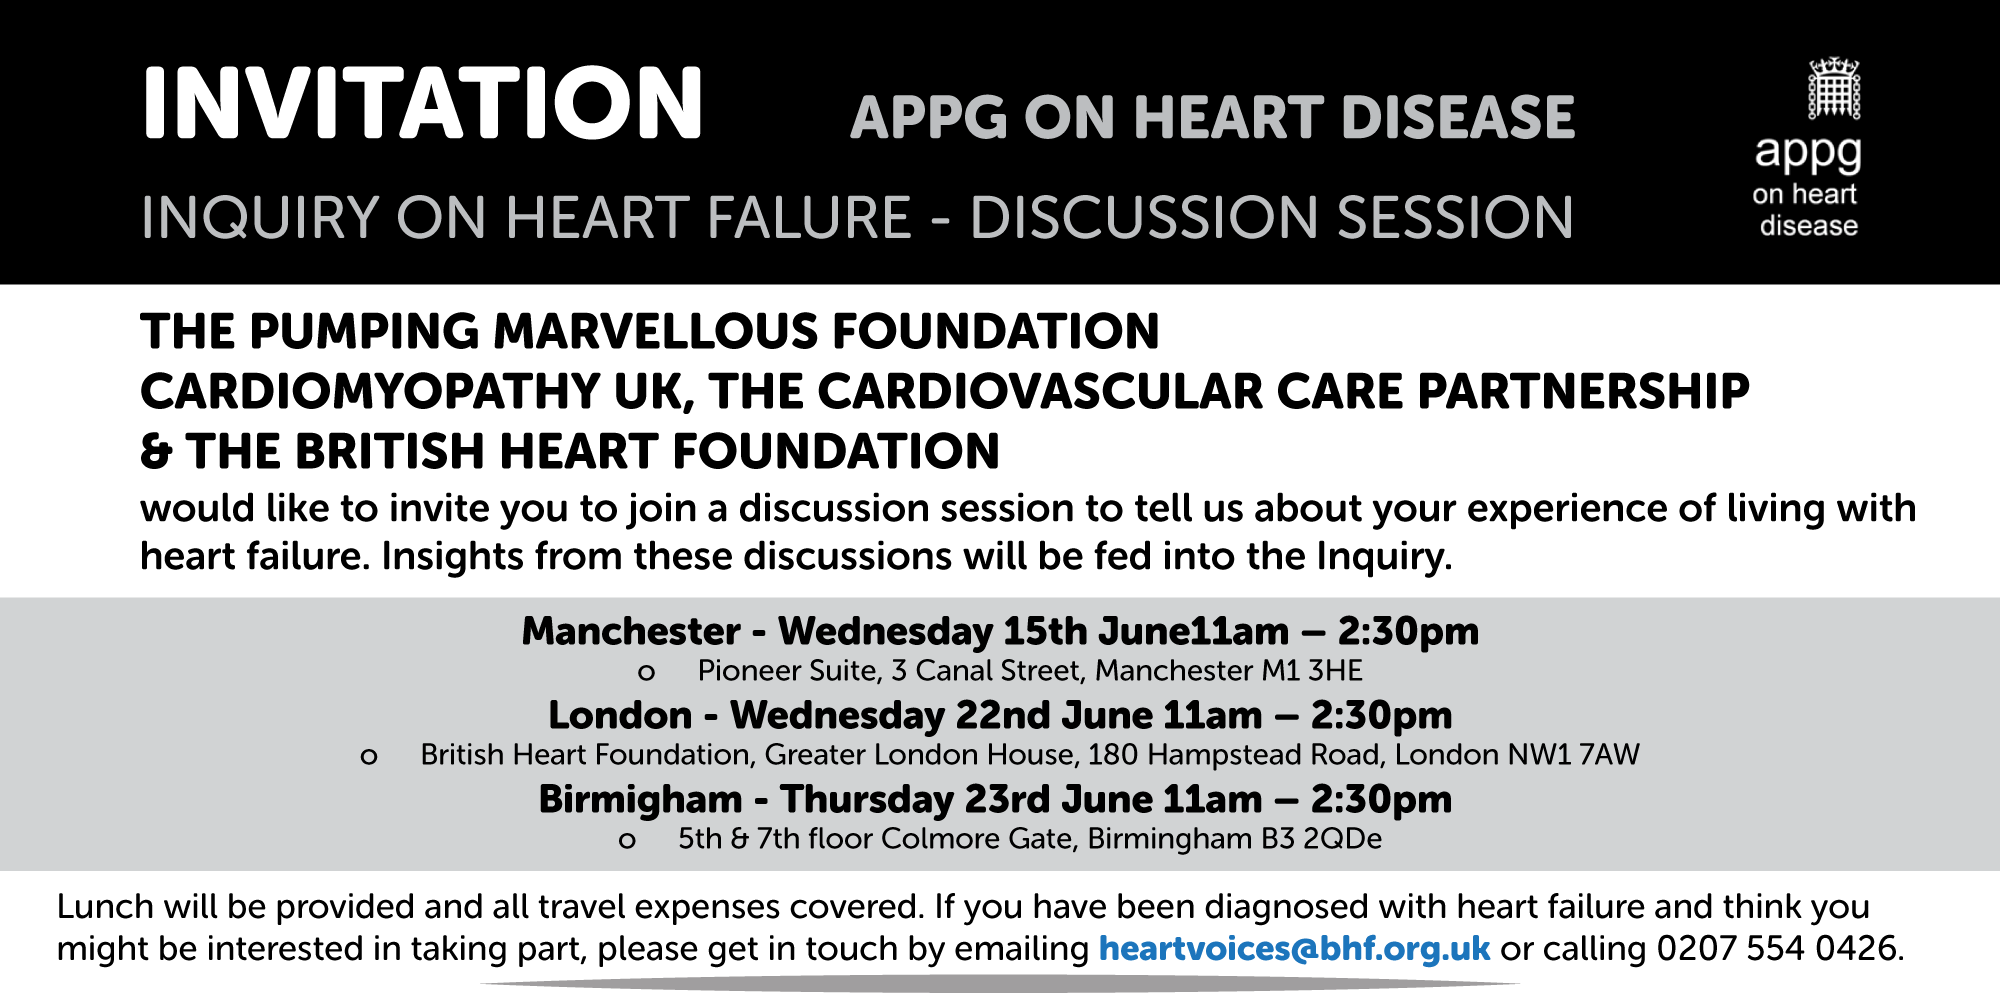 Parliamentary Heart Failure Inquiry Discussion Sessions